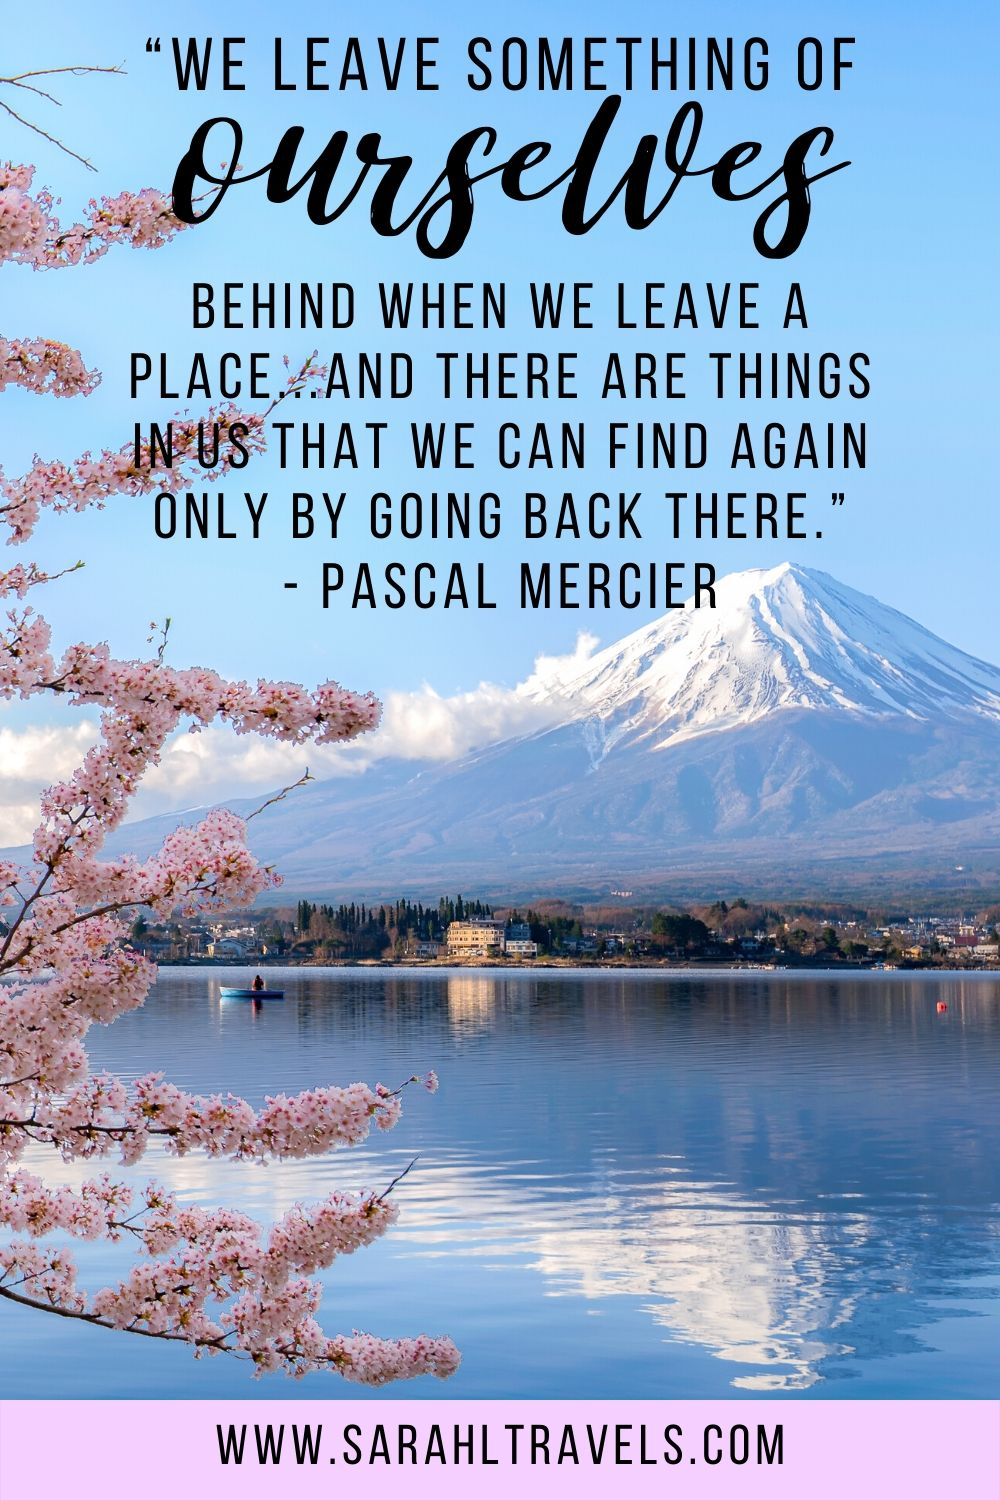 """Mt Fuji in Japan with quote """"We leave something of ourselves behind when we leave a place...and there are things in us that we can find again only by going back there."""""""